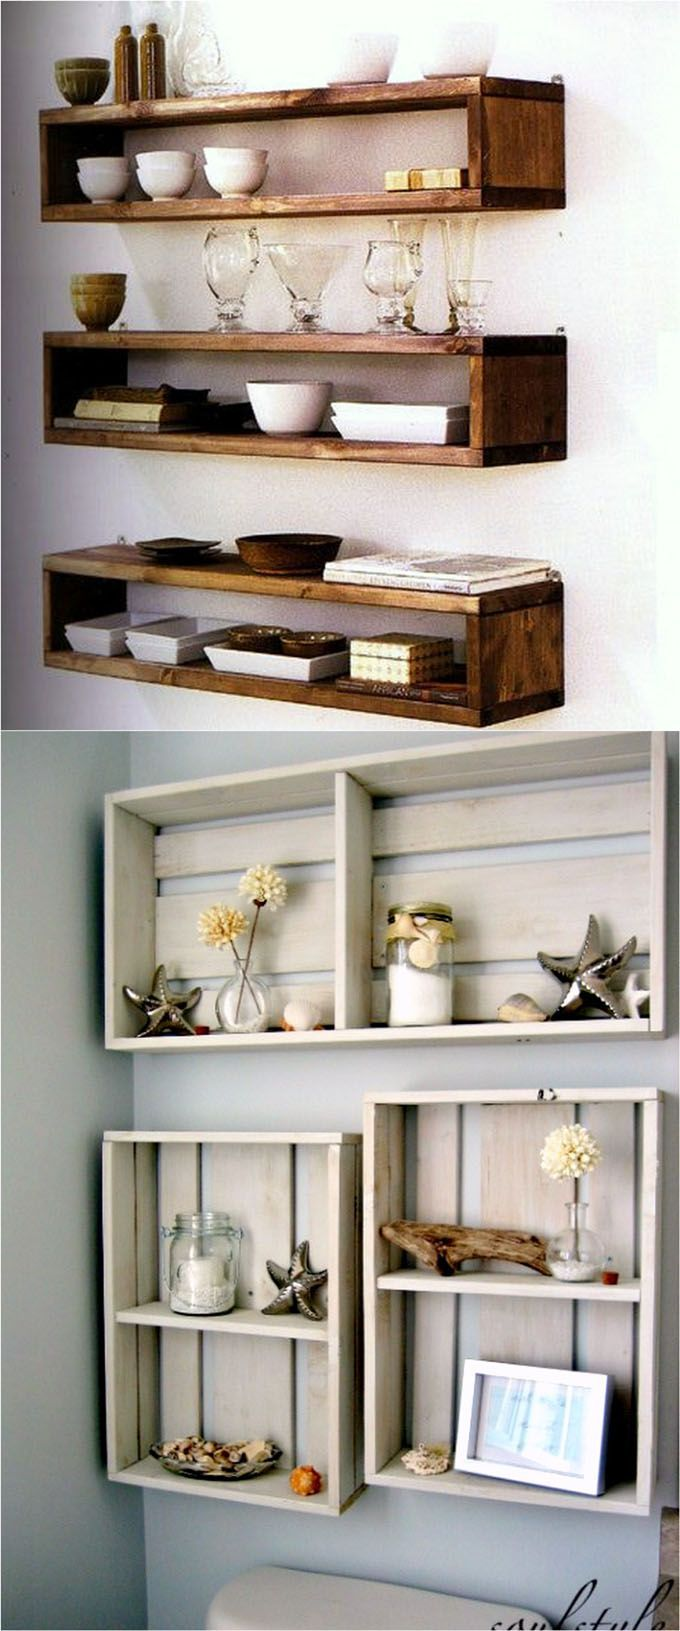 How To Hang Floating Shelves 16 Easy And Stylish Diy Floating Shelves & Wall Shelves  Wall